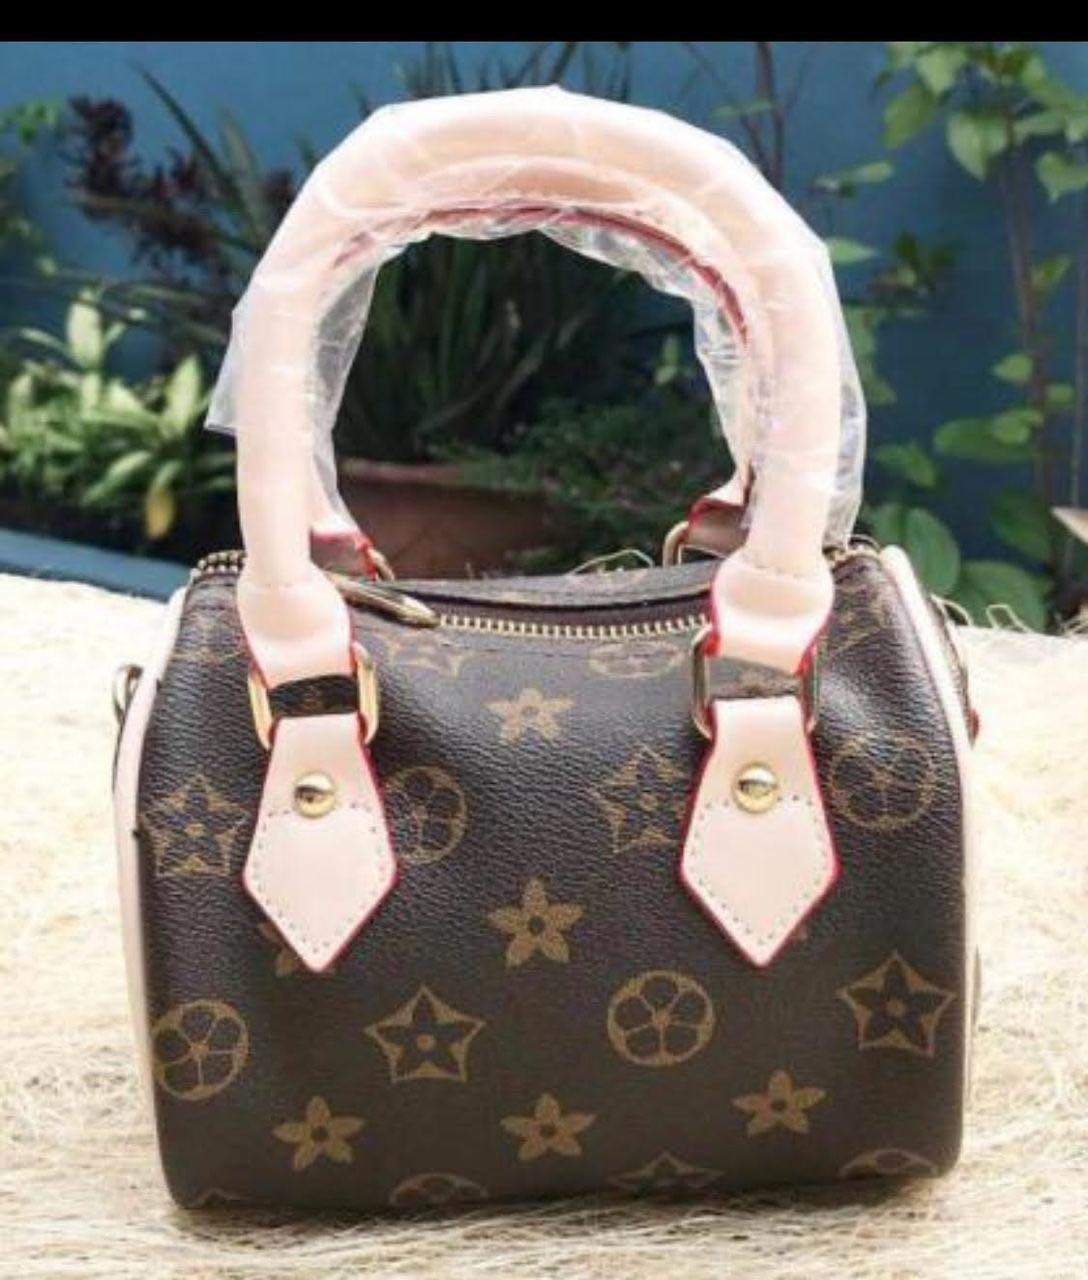 Details about  /Star Glitter Women/'s Bag Star Fashion Cloack Strap Bag Shiny Bag New